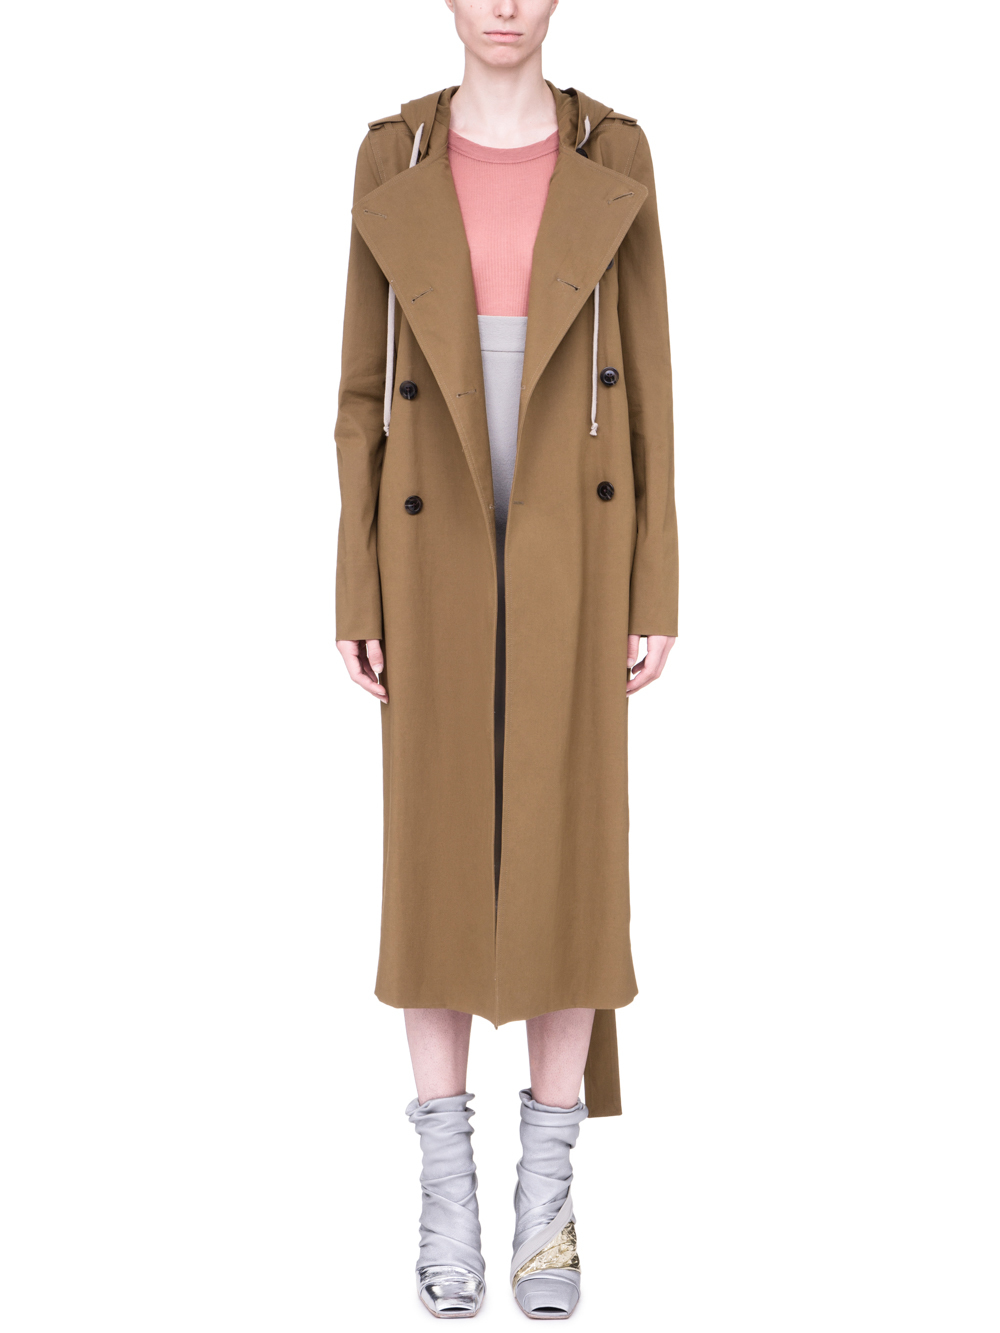 RICK OWENS SS19 BABEL SOFT TRENCH IN MUSTARD GREEN